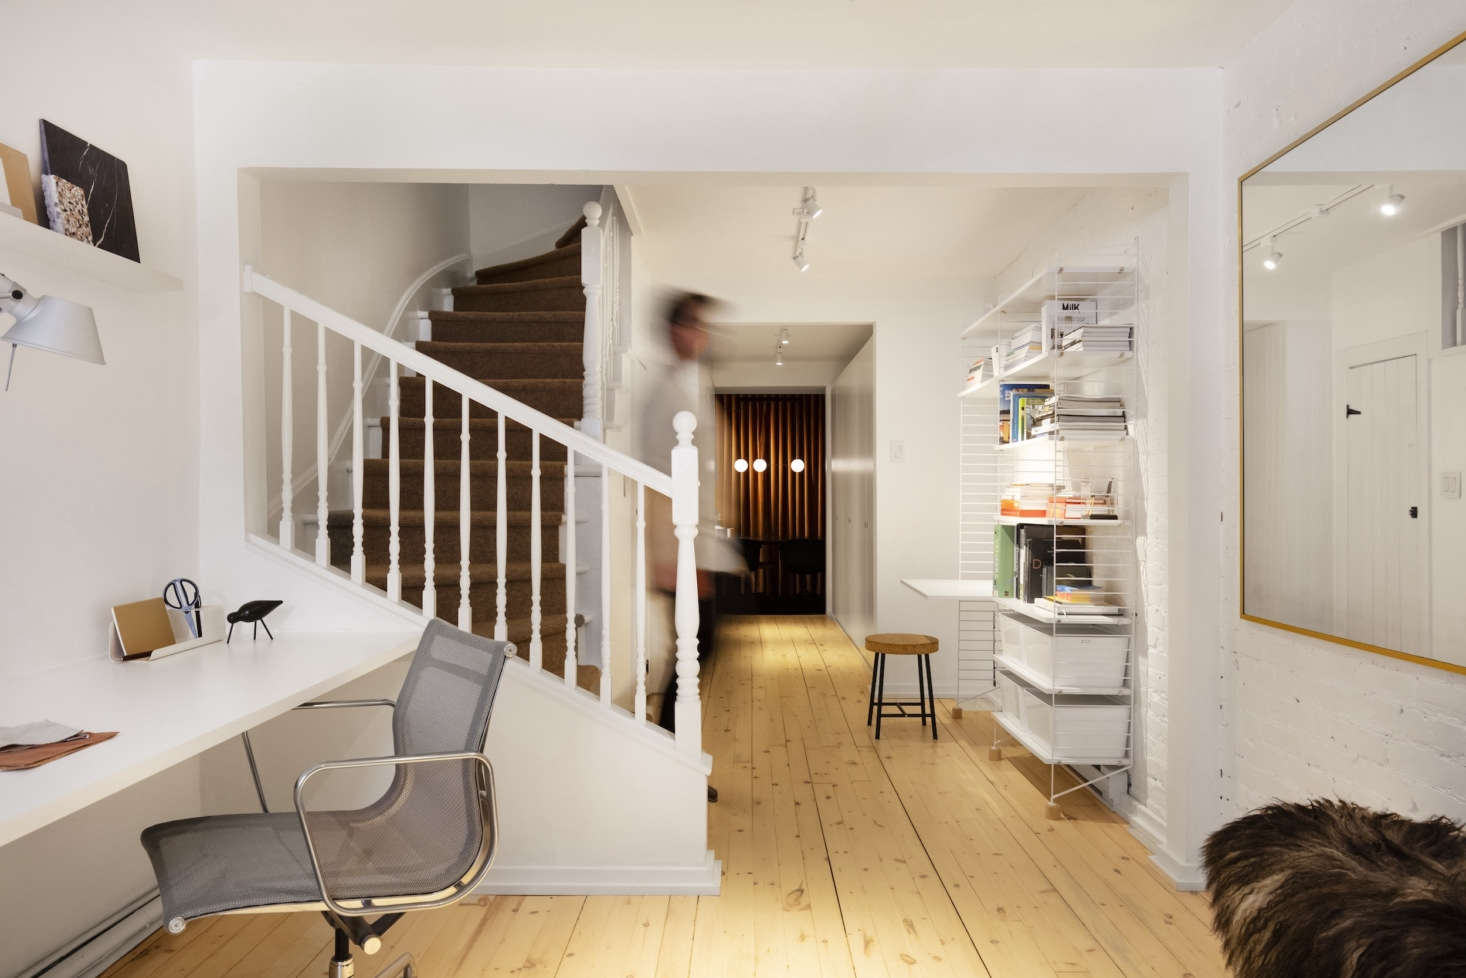 The staircase is original to the 85 house. The couple added a Tretford carpet runner in lambswool. The main work area is to the left. The String shelving and desk unit on the right is additional work space for colleagues that occasionally drop in to collaborate.